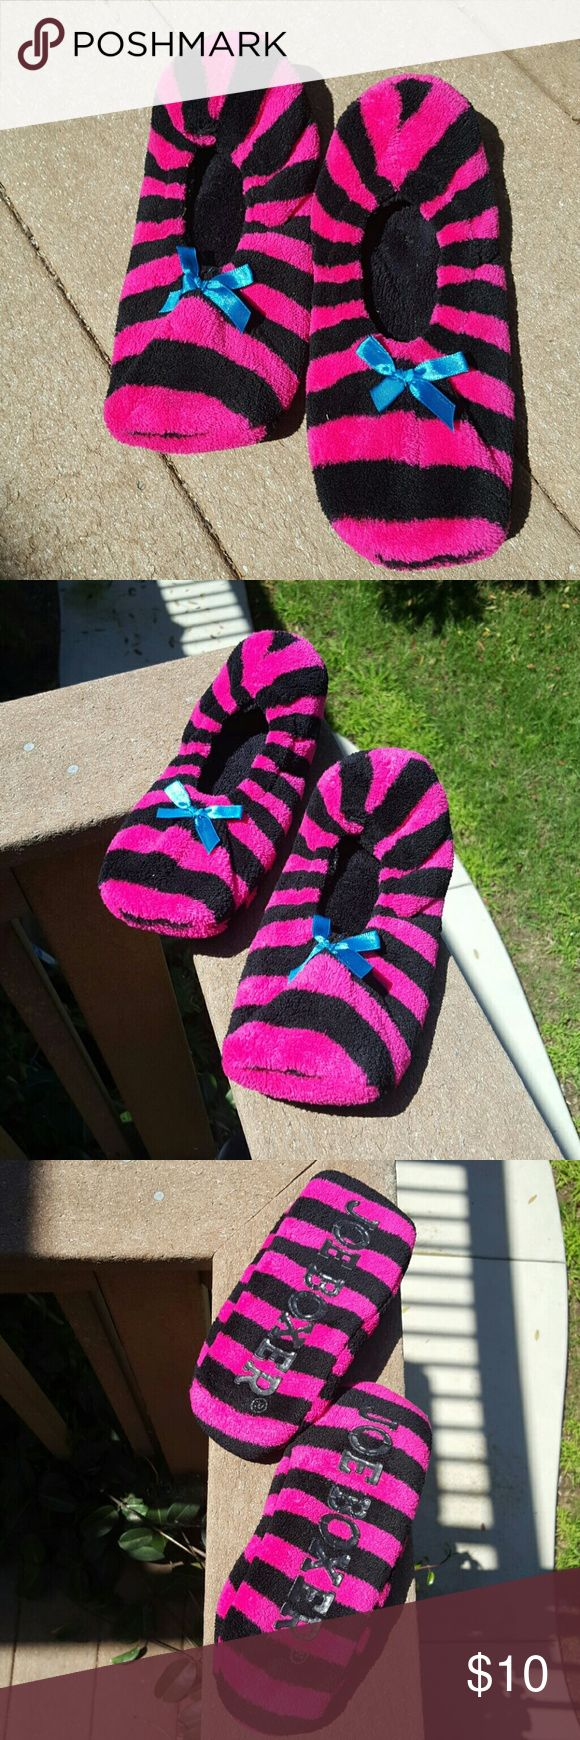 Joe Boxer Striped Slippers  NWOT NWOT  Joe Boxer pink and black striped slippers. Never worn. In excellent condition with no stains or rips. I thought I would have likes them but ended up never wearing them. No tag on slippers say size but I believe it would fit a 9 or 10. I primarily wear a size 10 and they fit perfectly.  Comes from a smoke-free home. Joe Boxer Shoes Slippers